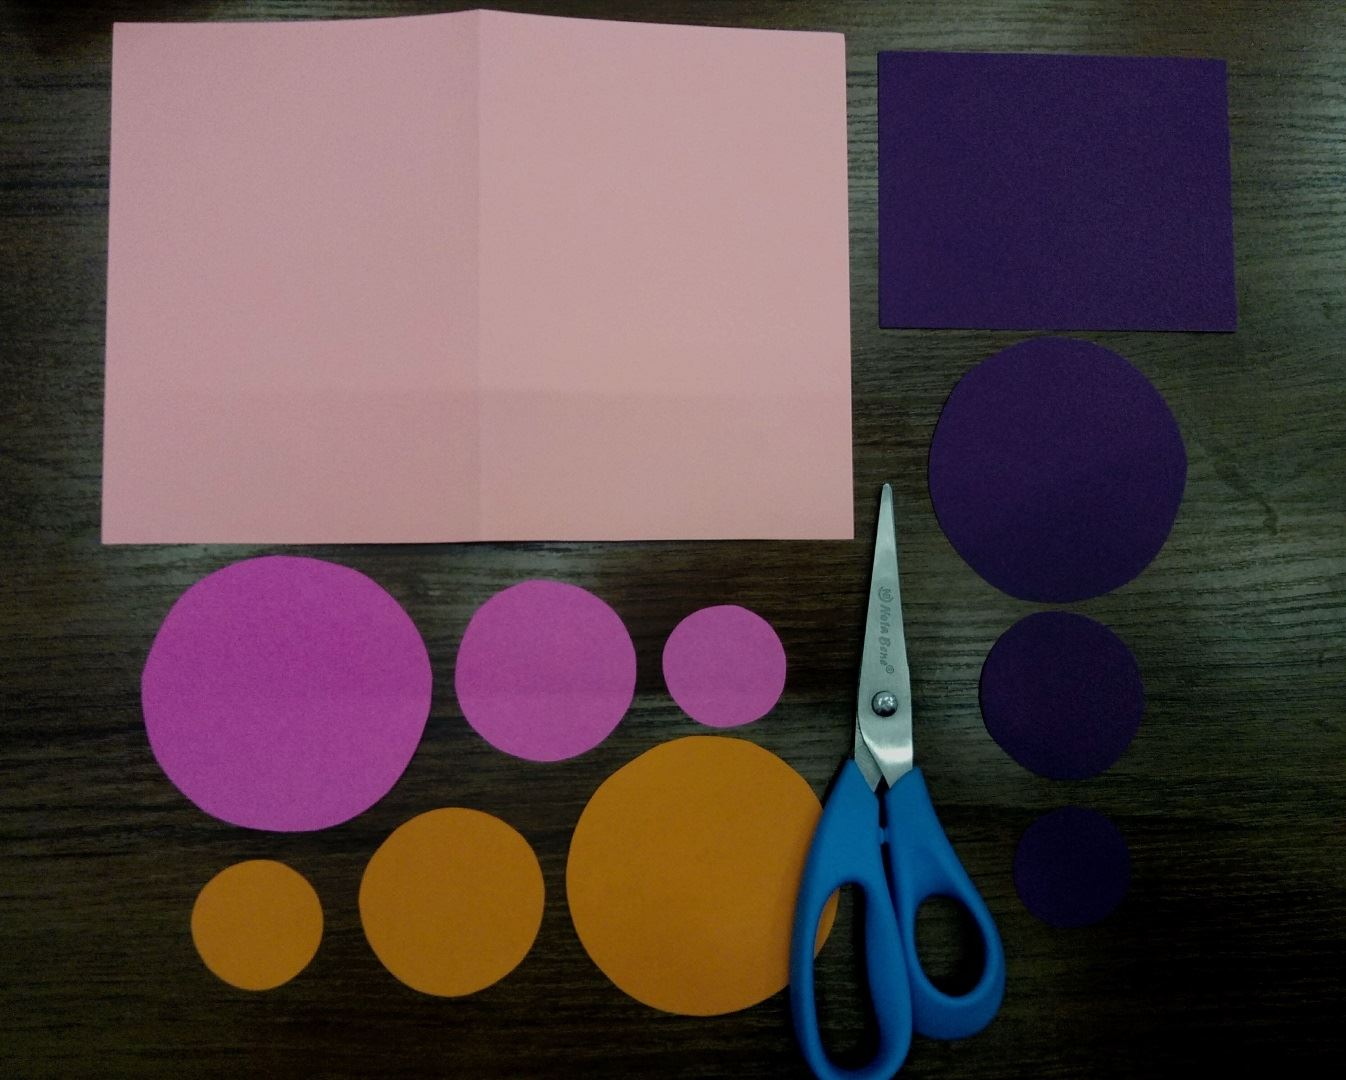 Cut out 3 circles: 1 large, 1 medium and 1 small from pink, lilac and orange paper. Also cut out a purple rectangle. It's very simple :)